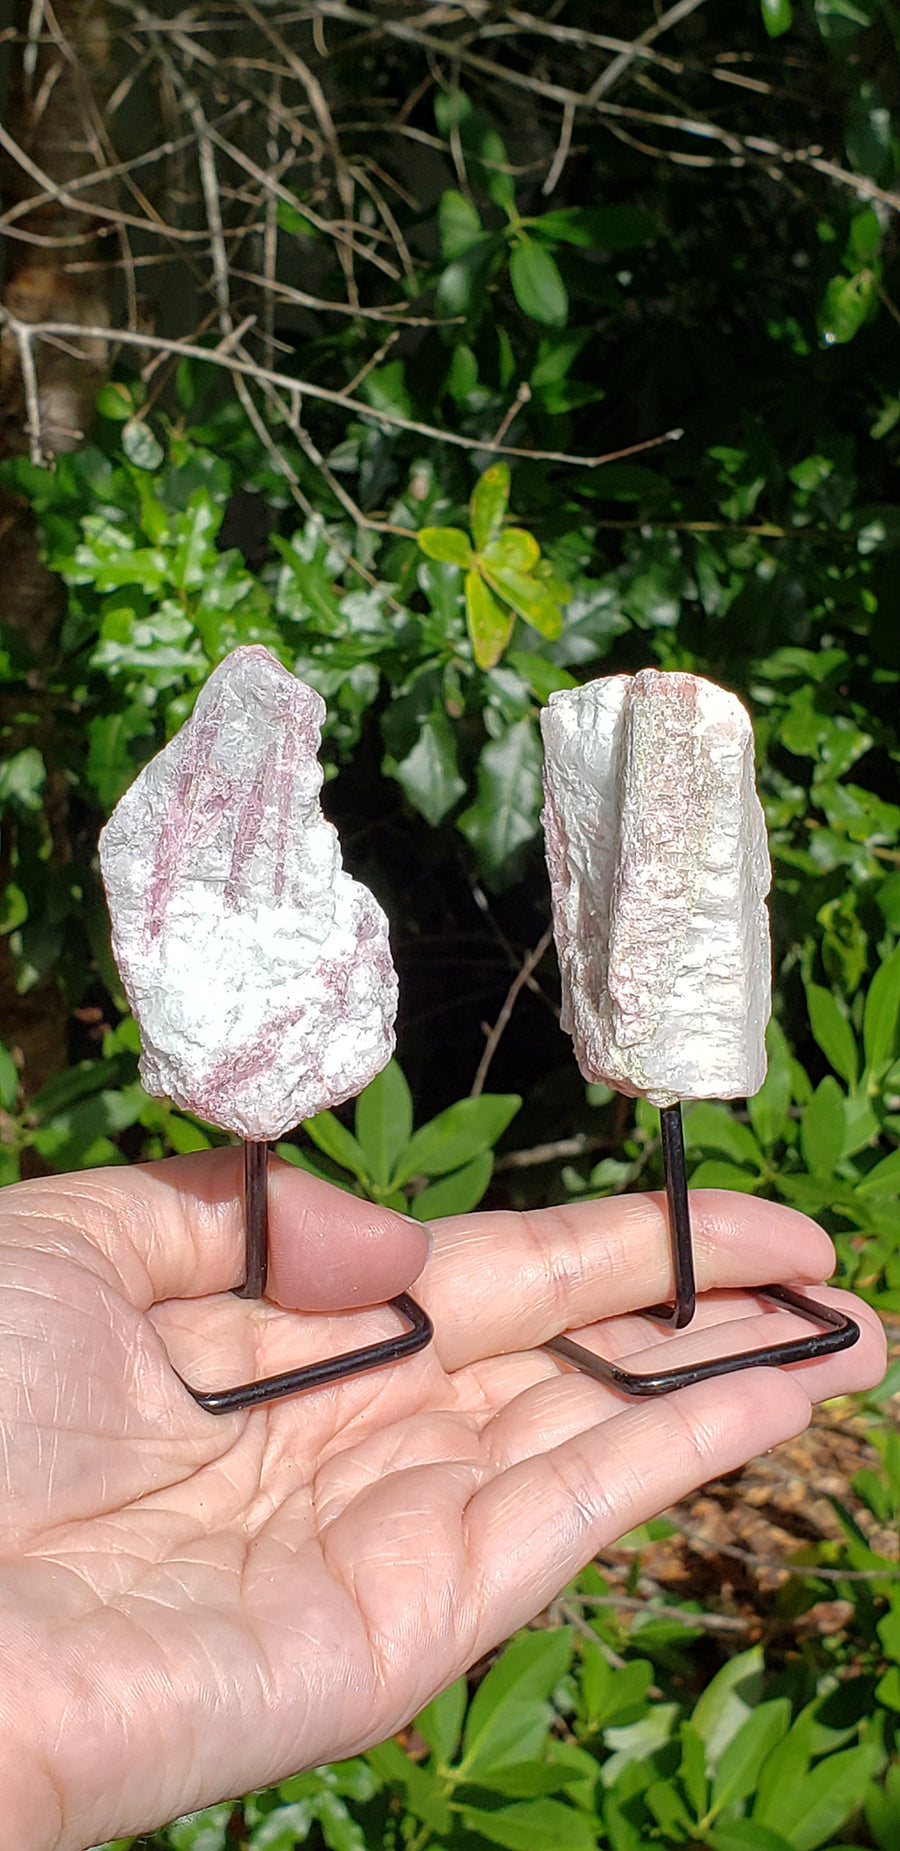 Pink Tourmaline in Quartz Natural Gemstone Sculpture on Metal Stand